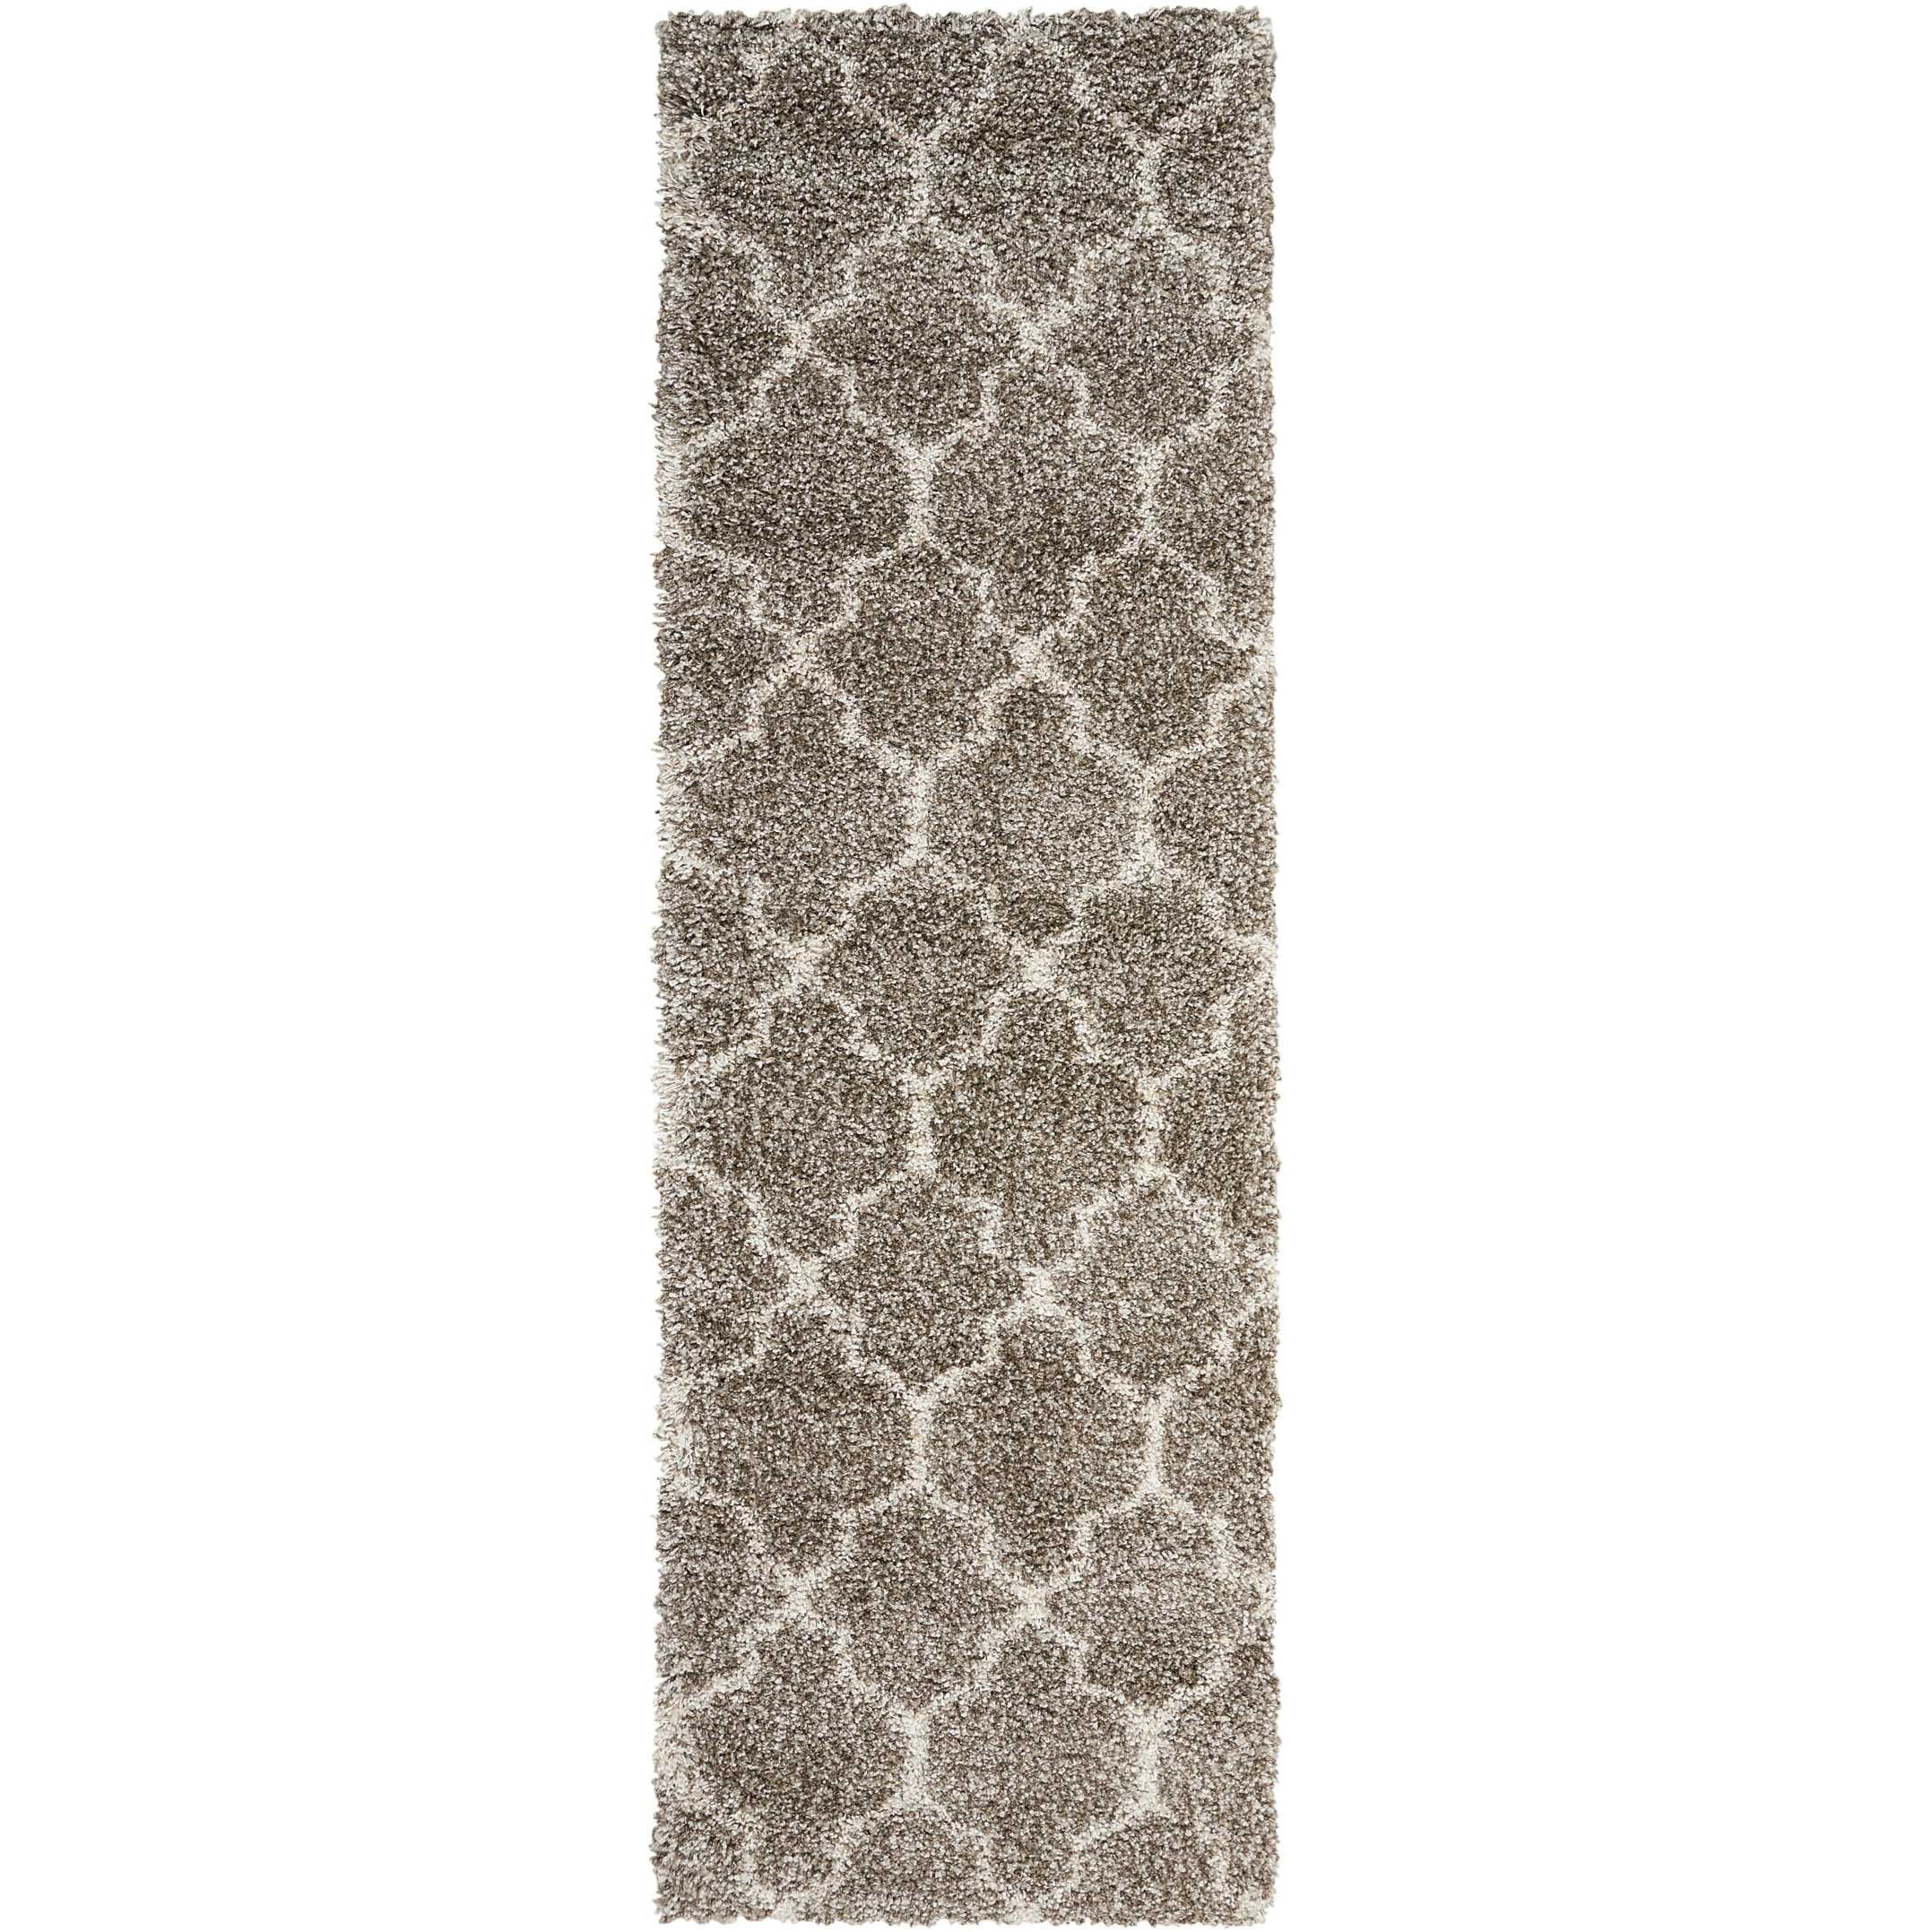 """Amore 2'2"""" x 7'6"""" Stone Runner Rug by Nourison at Sprintz Furniture"""